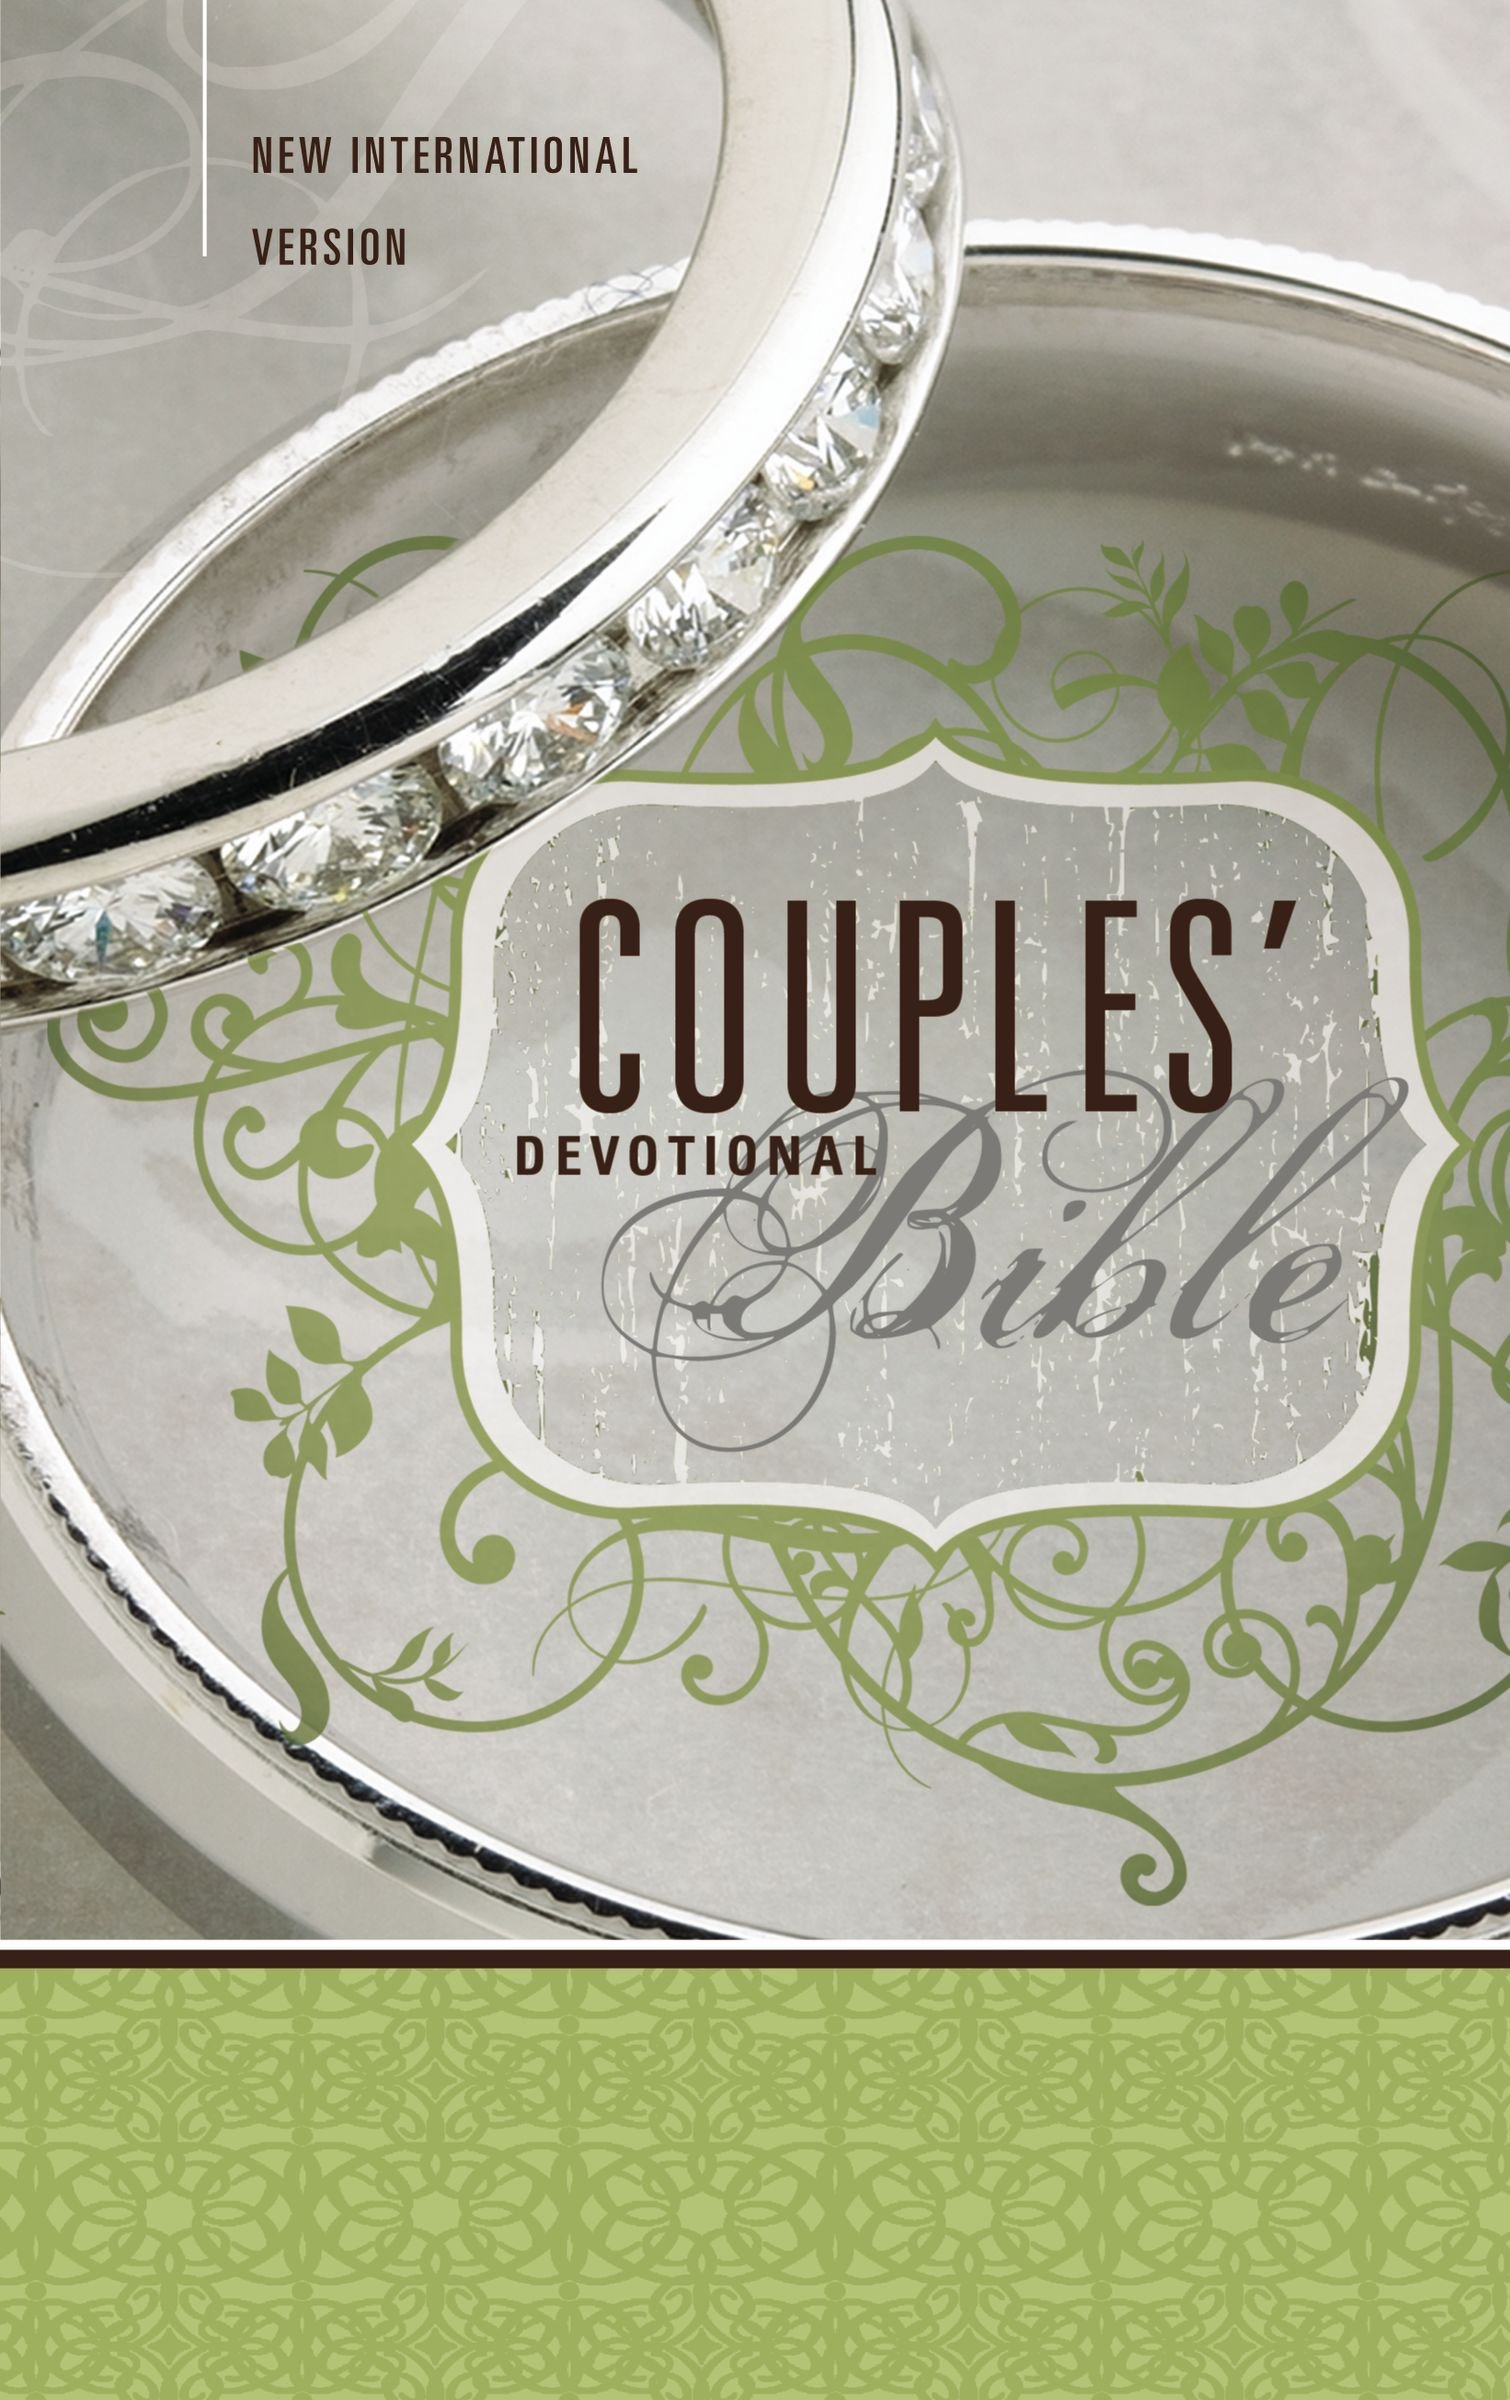 Dating couples bible devotions